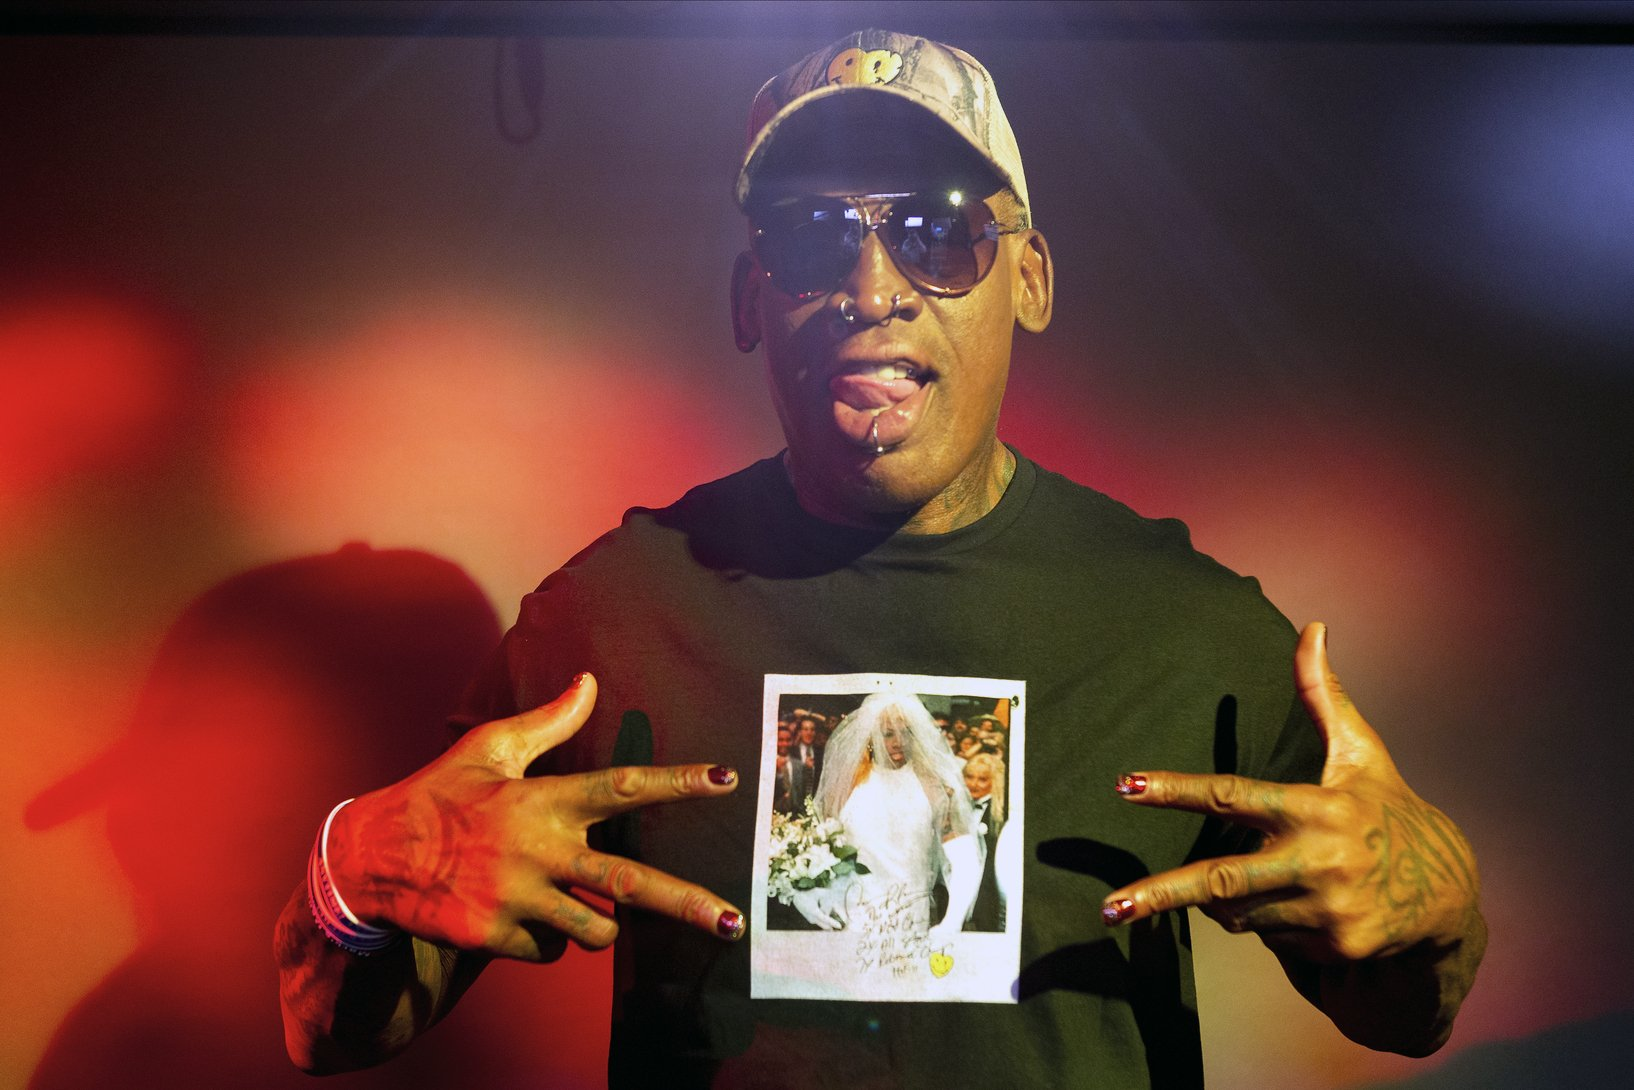 Dennis Rodman Claims Madonna Offered Him $20 Million to Father Her Child